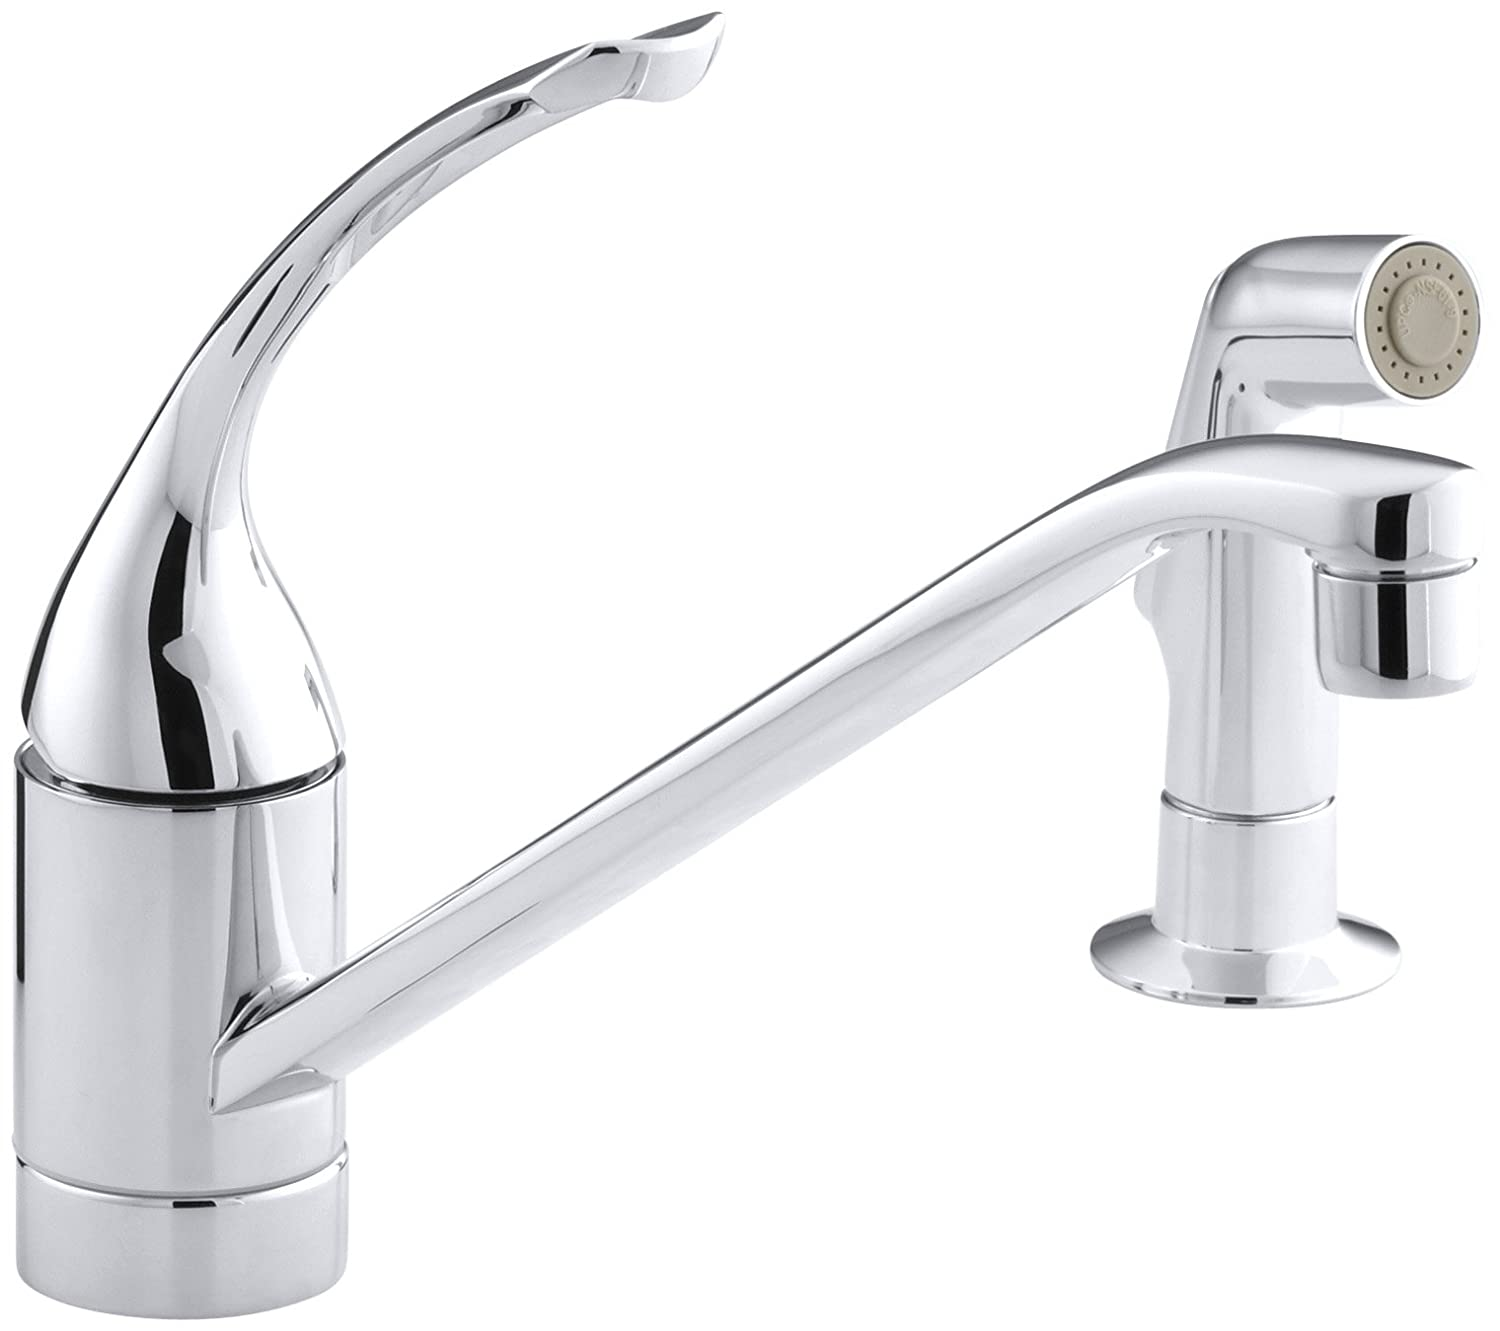 KOHLER K 15176 FL CP Coralais Single Control Kitchen Sink Faucet, Polished  Chrome   Touch On Kitchen Sink Faucets   Amazon.com